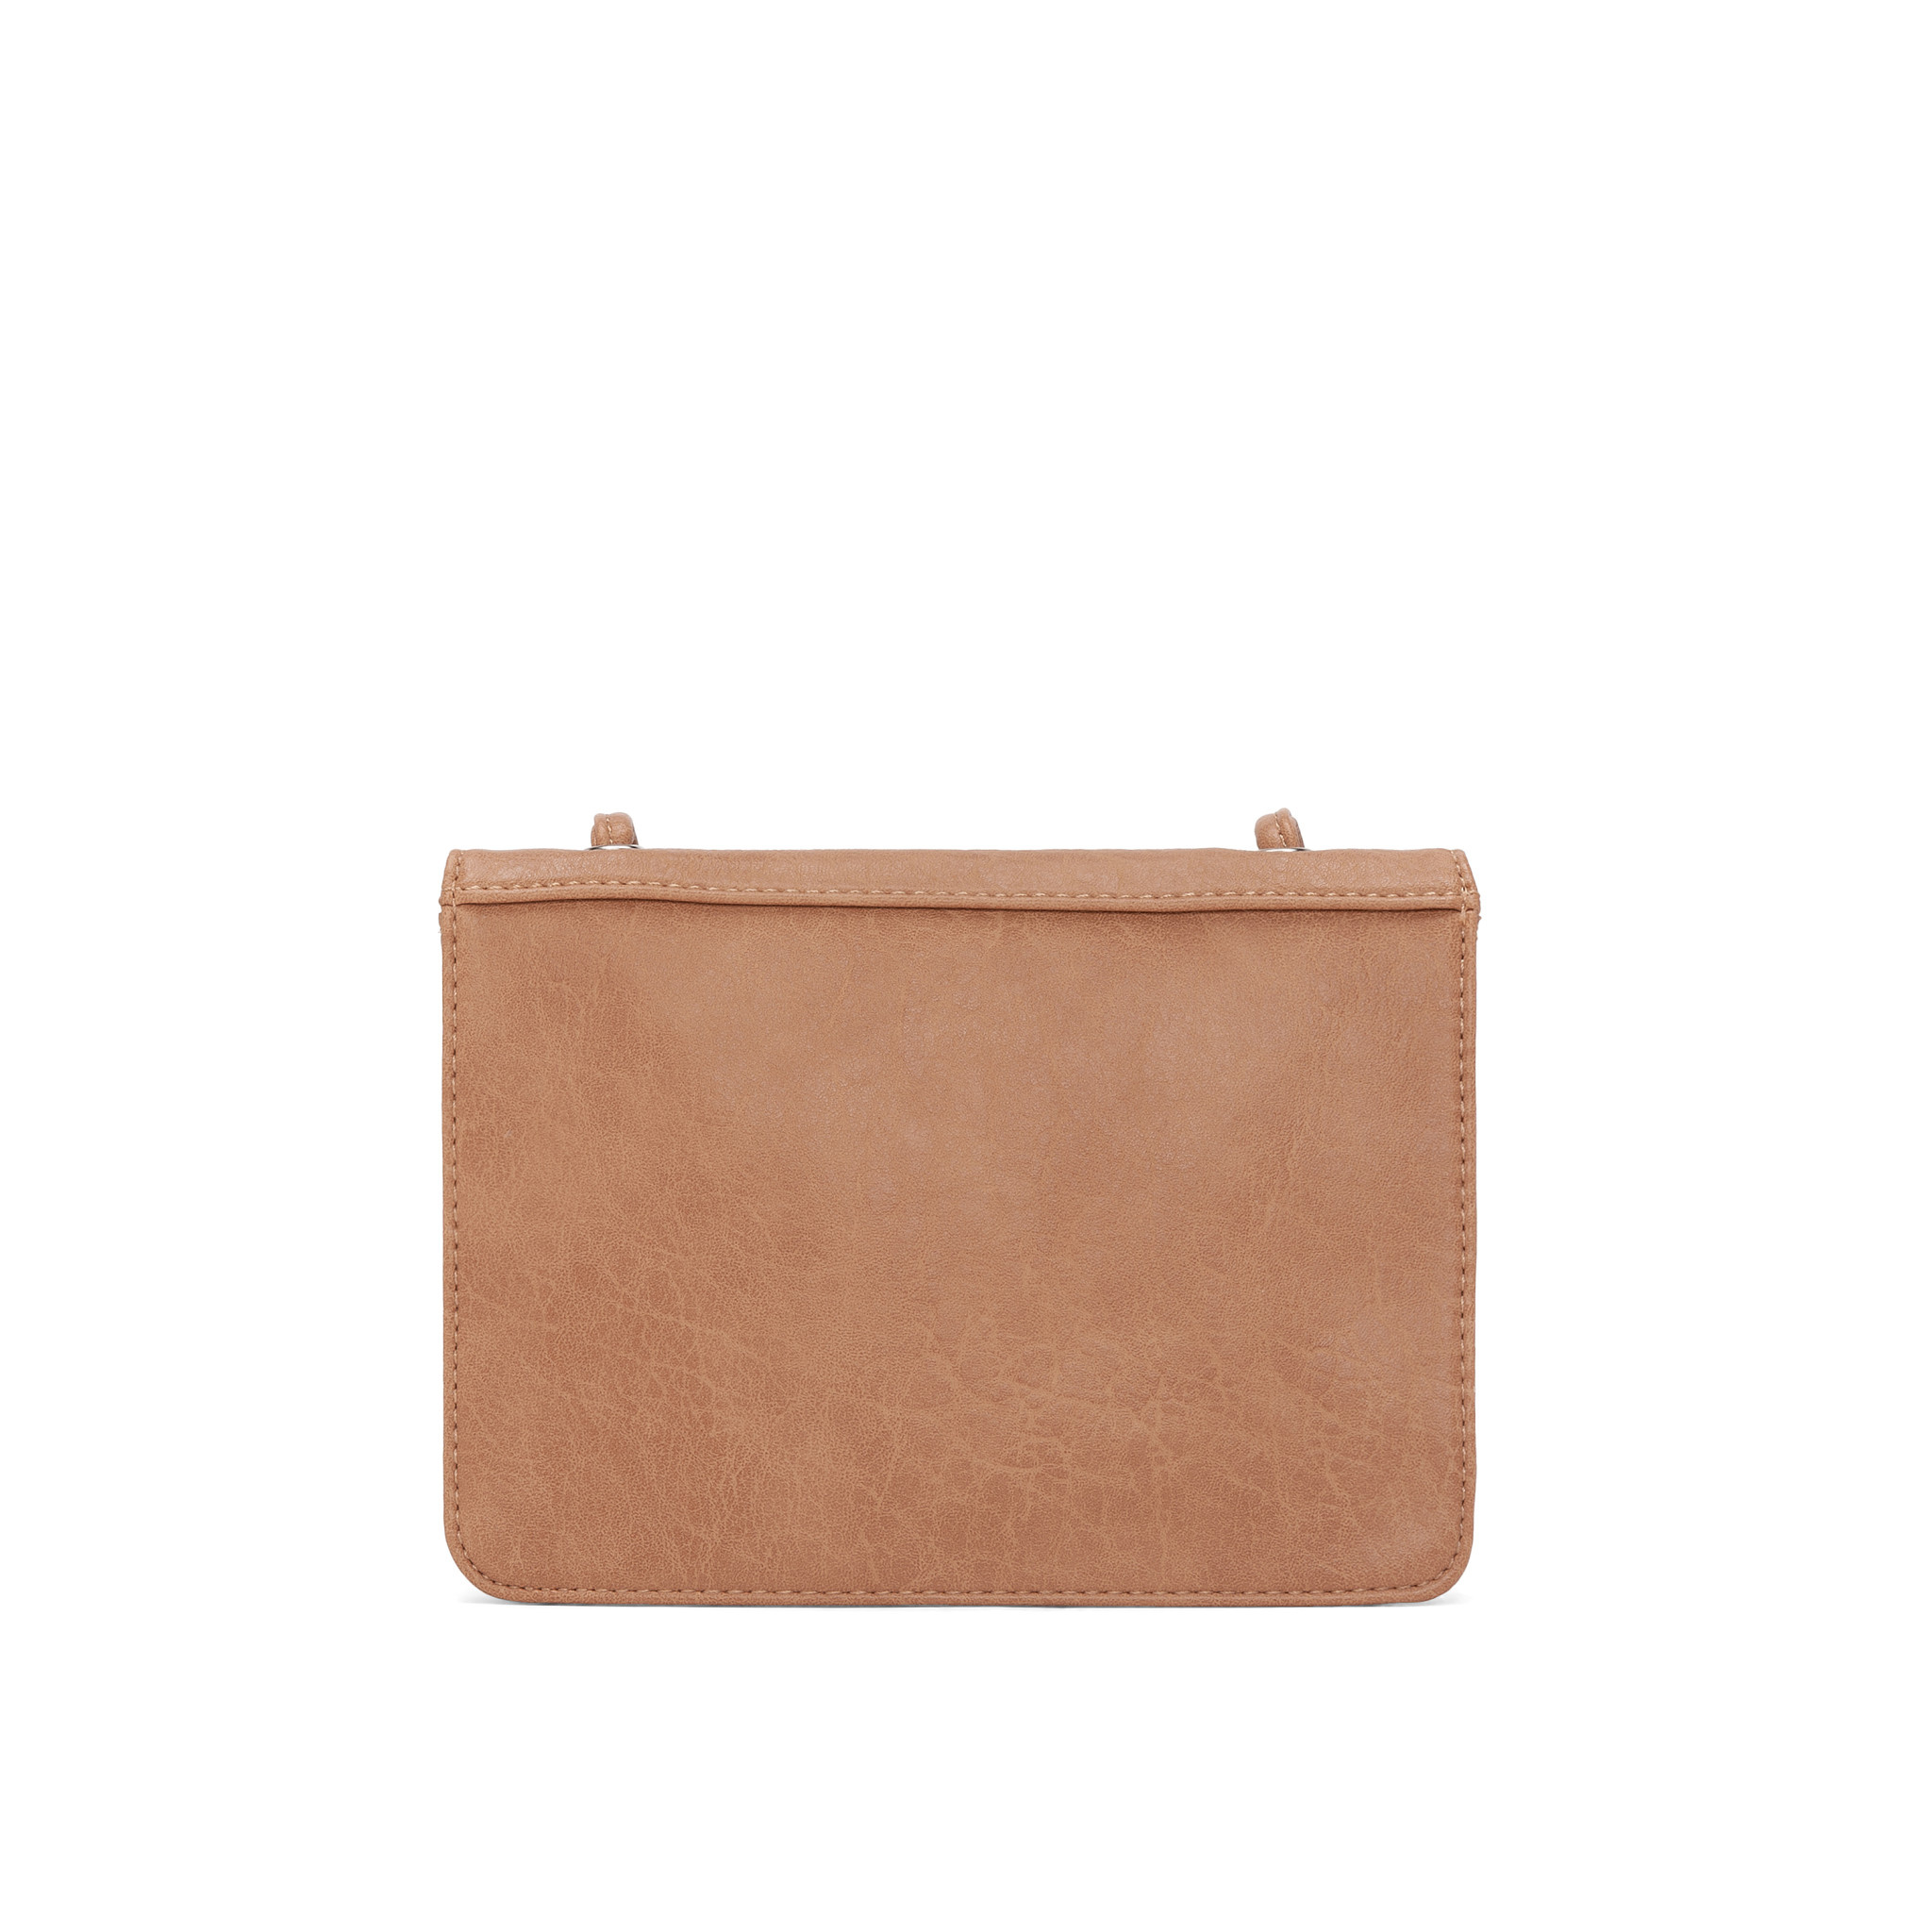 Colab Colab Faux Goat PU Crossbody Carryall (#6426) - Cashew